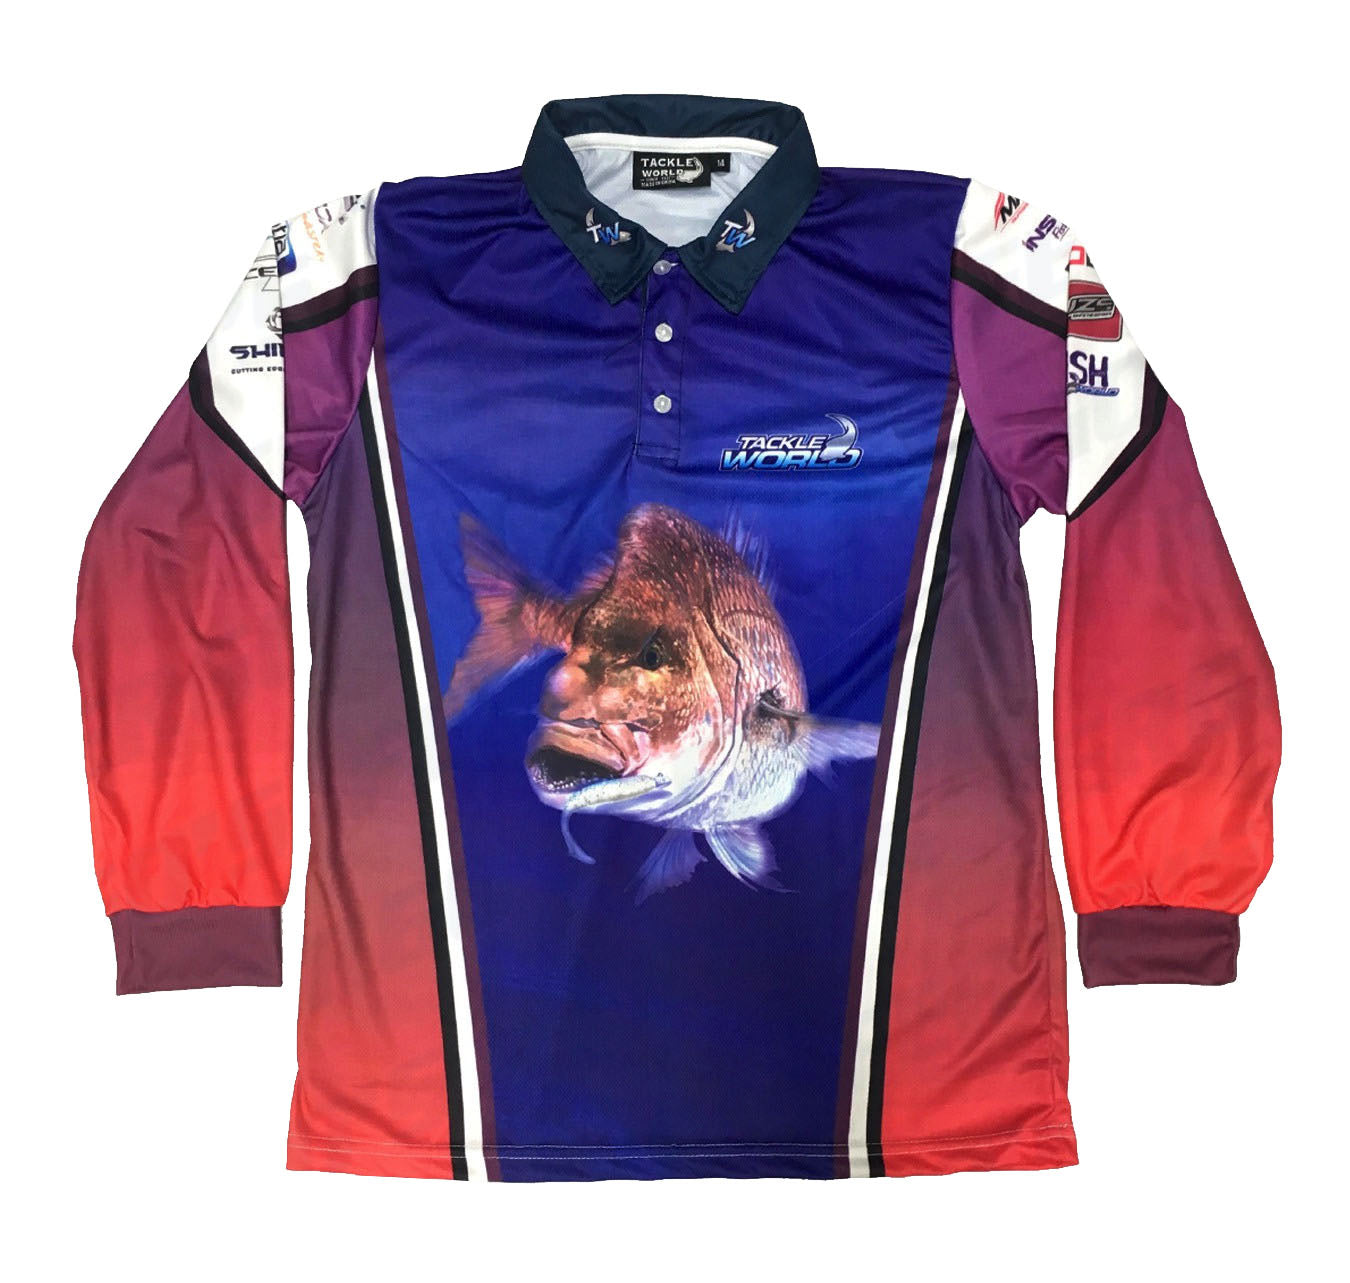 Tackle World Snapper Kids Fishing Shirts